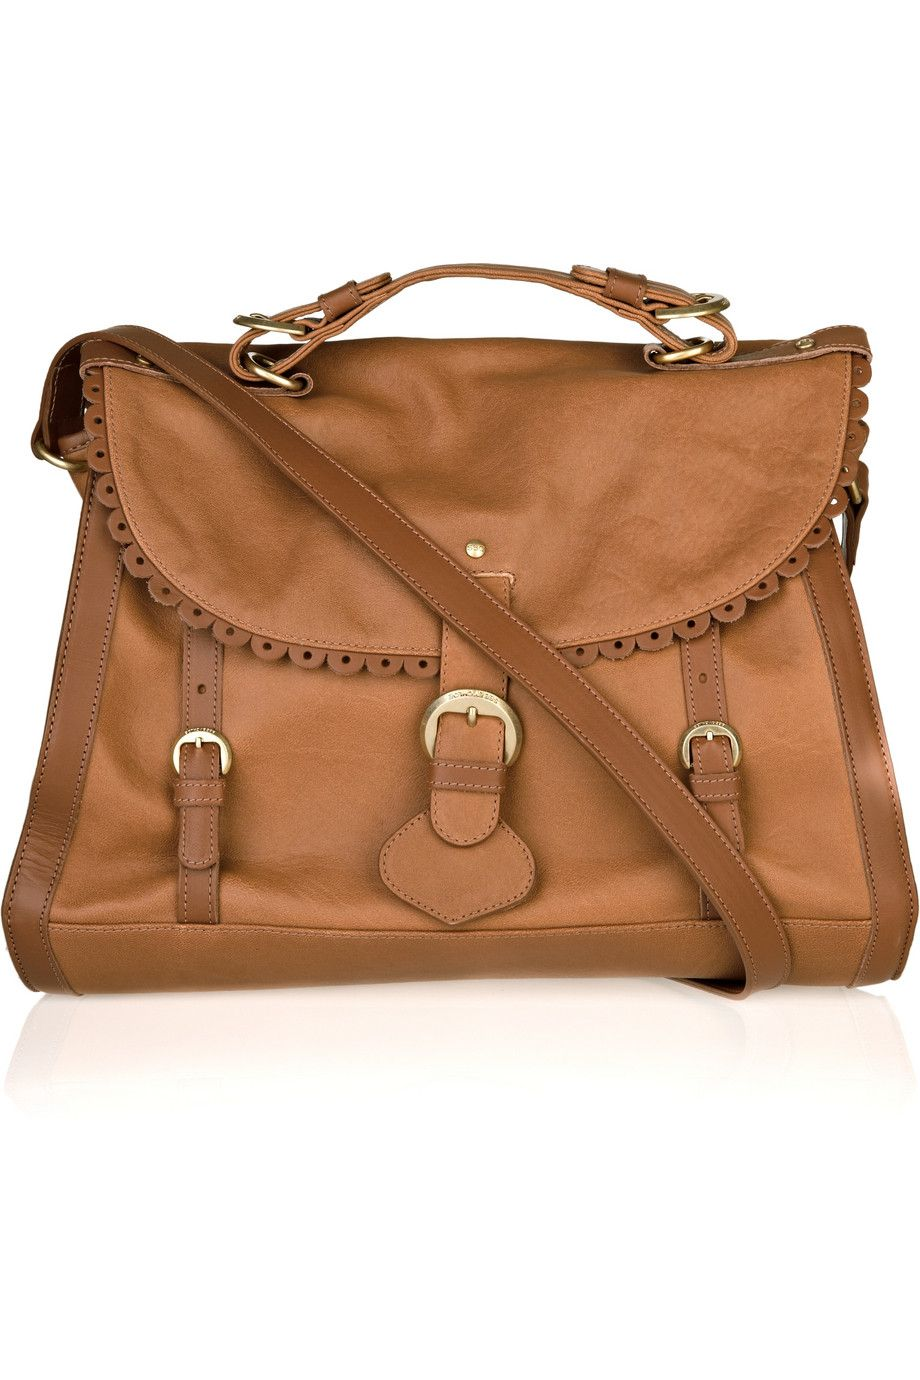 See By ChloÉ Poya Vintage Leather Satchel Color Toffee